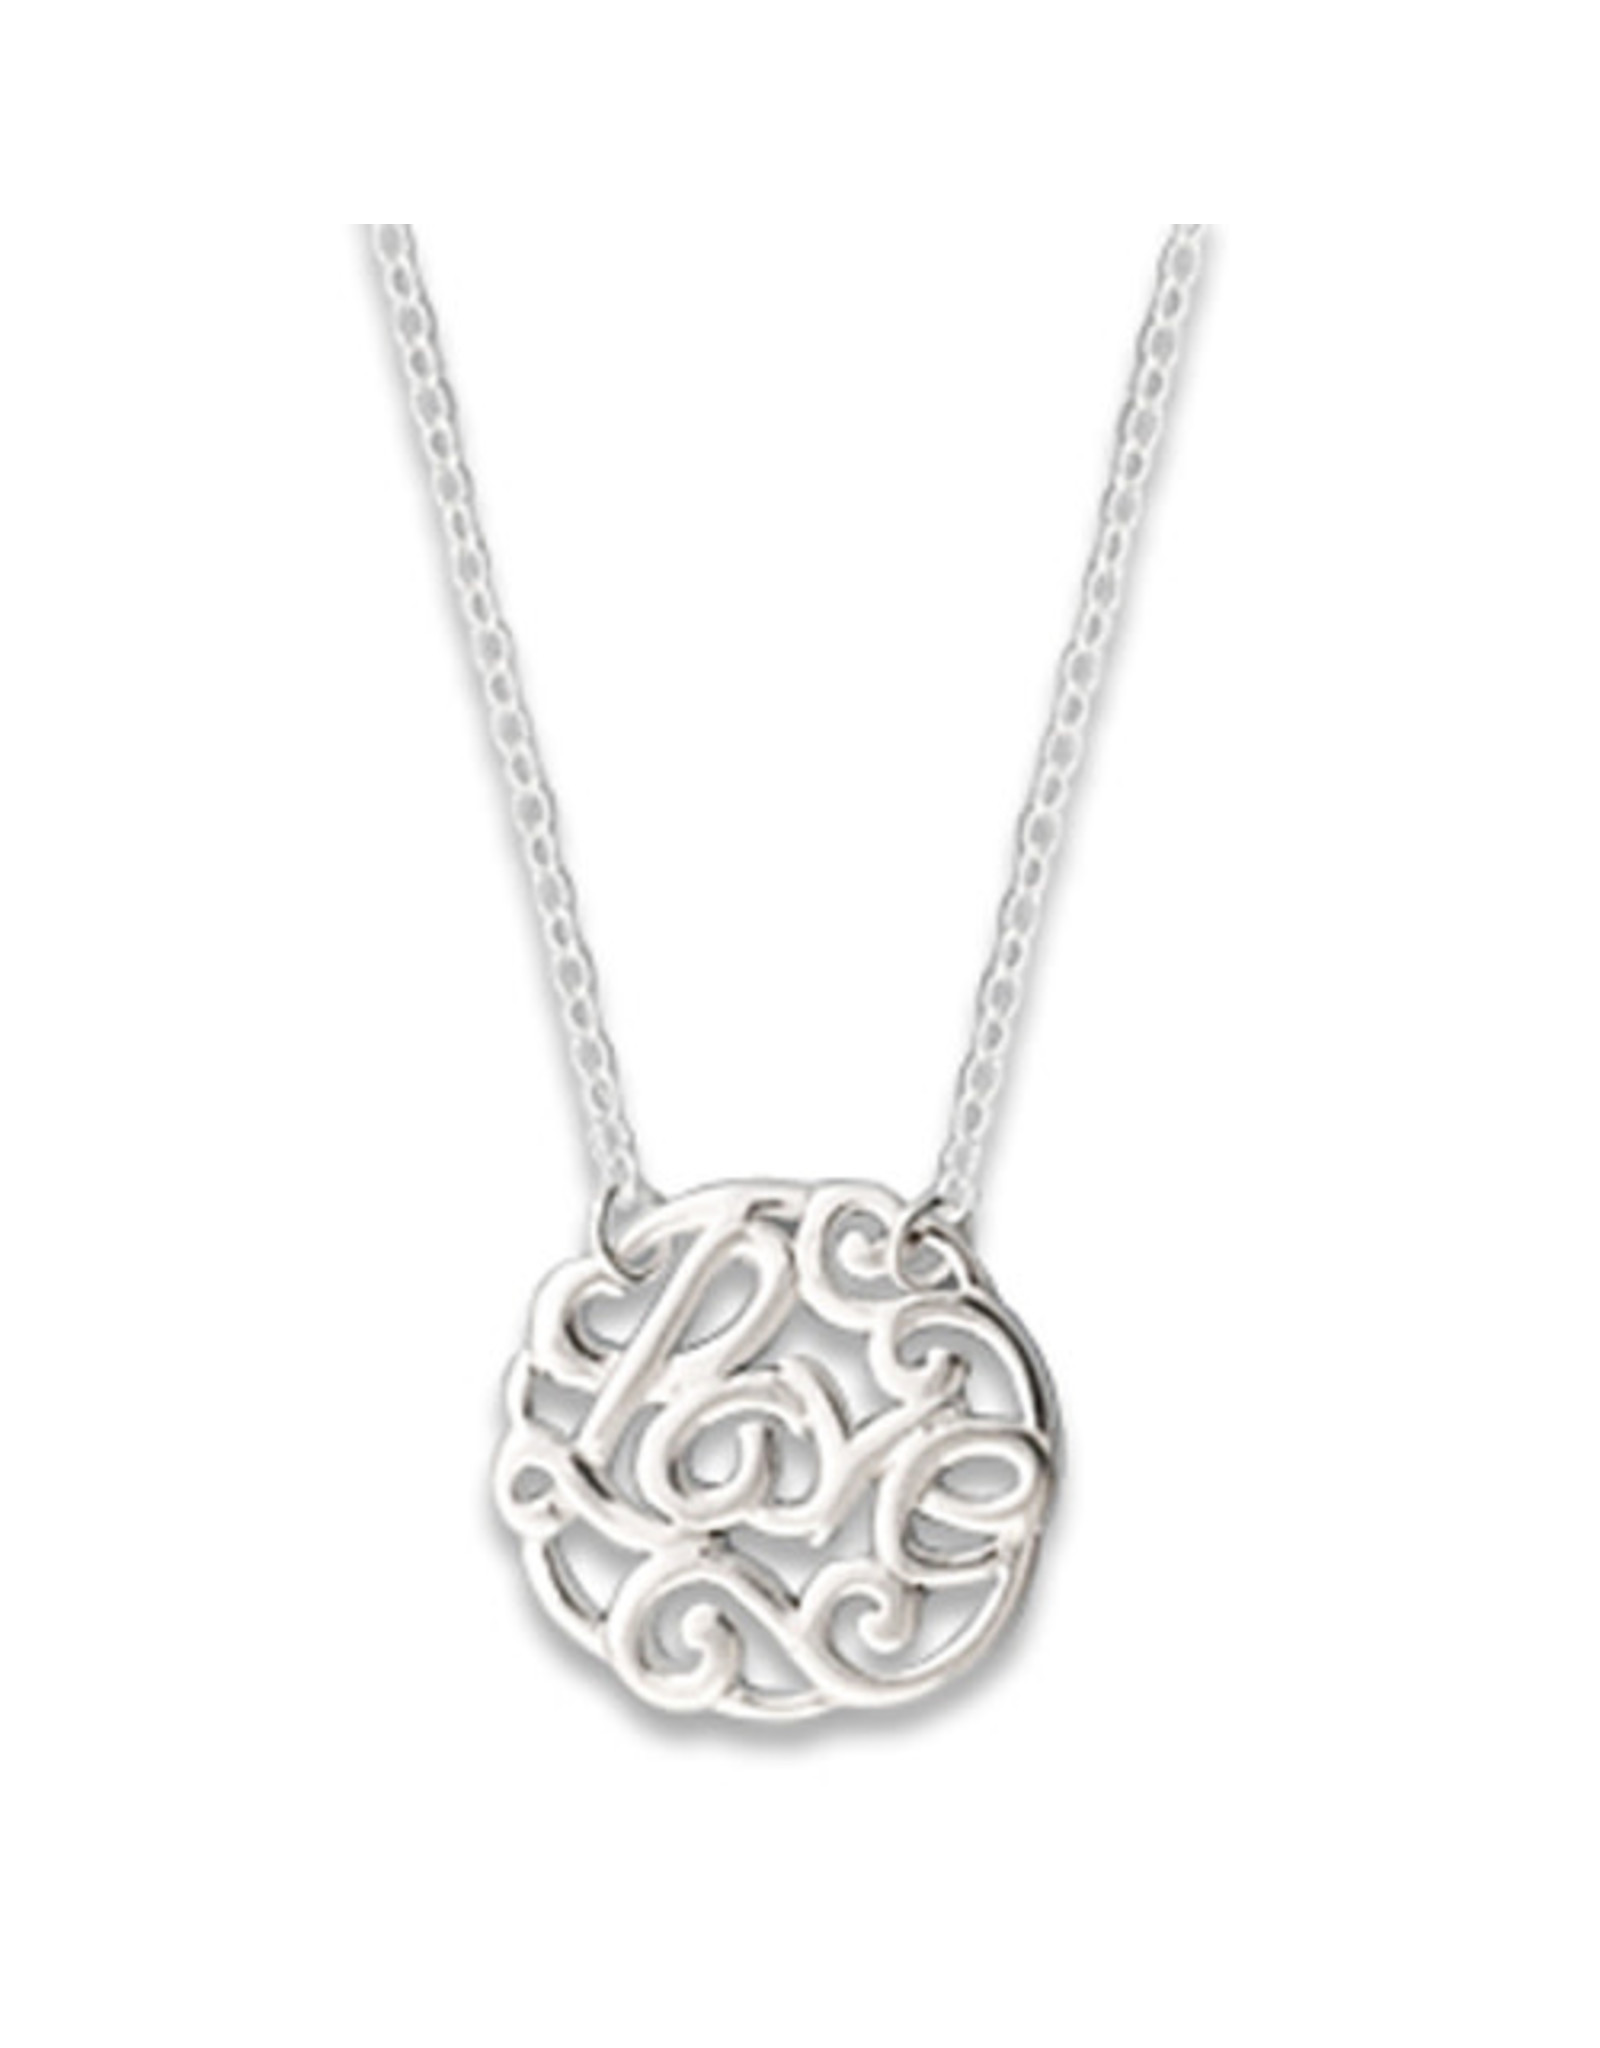 Chain and Hoop/Siloro LOVE NECKLACE